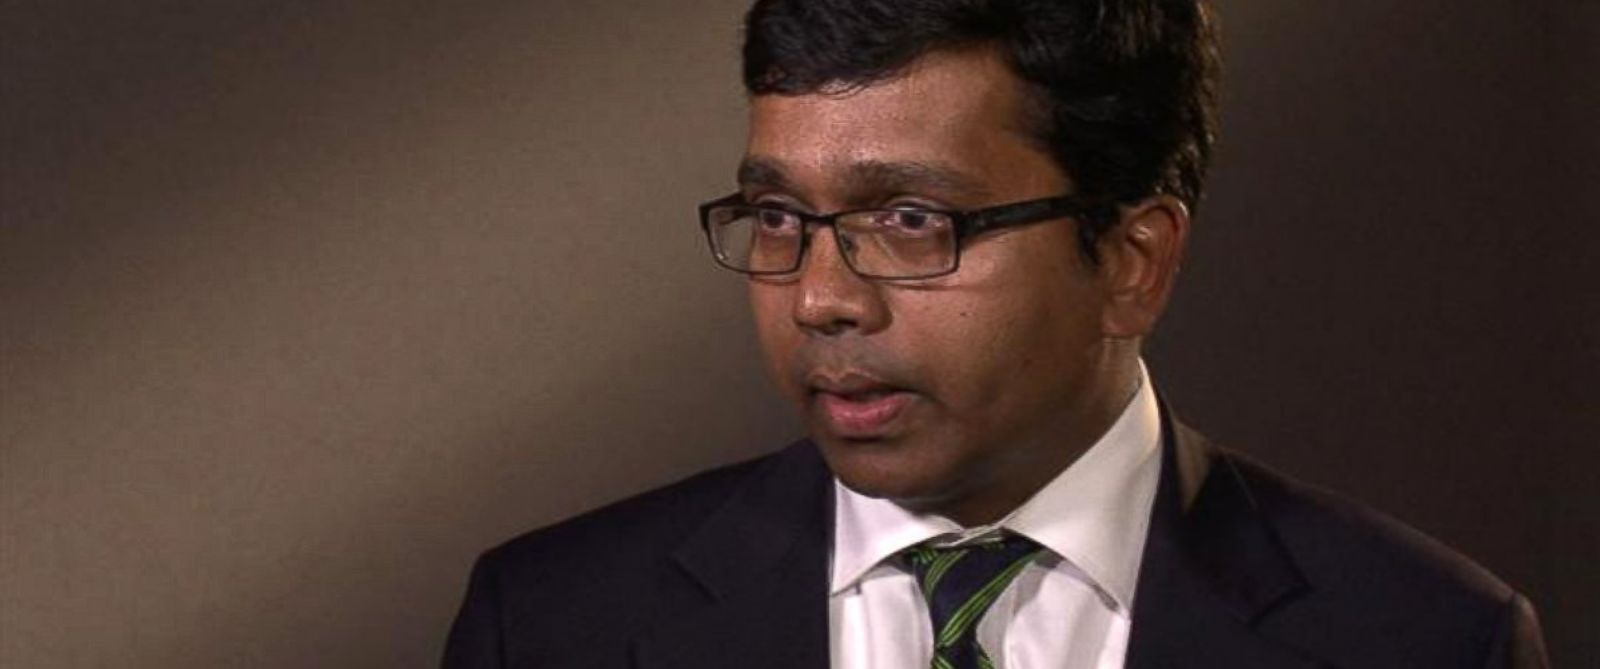 PHOTO: Dr. Jose Mathews said he was removed from his position as chief of psychiatry at the VA hospital in St. Louis after he complained that other psychiatrists were counseling veterans for as few as three hours a day.